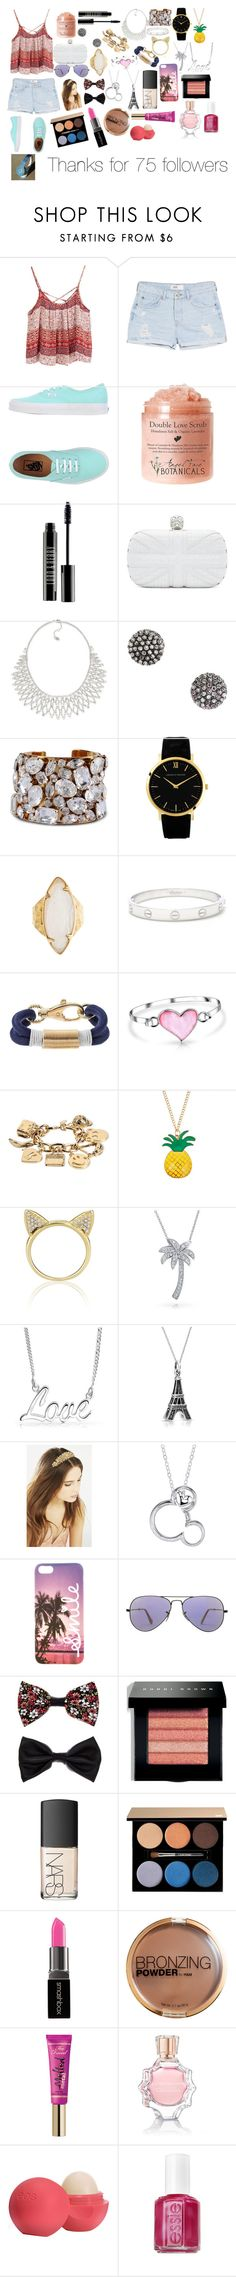 """""""Thanks for 75 followers"""" by greenlee-fountain11 ❤ liked on Polyvore featuring MANGO, Vans, Lord & Berry, Alexander McQueen, Carolee, Demitasse, STELLA McCARTNEY, Larsson & Jennings, HEATHER BENJAMIN and Cartier"""